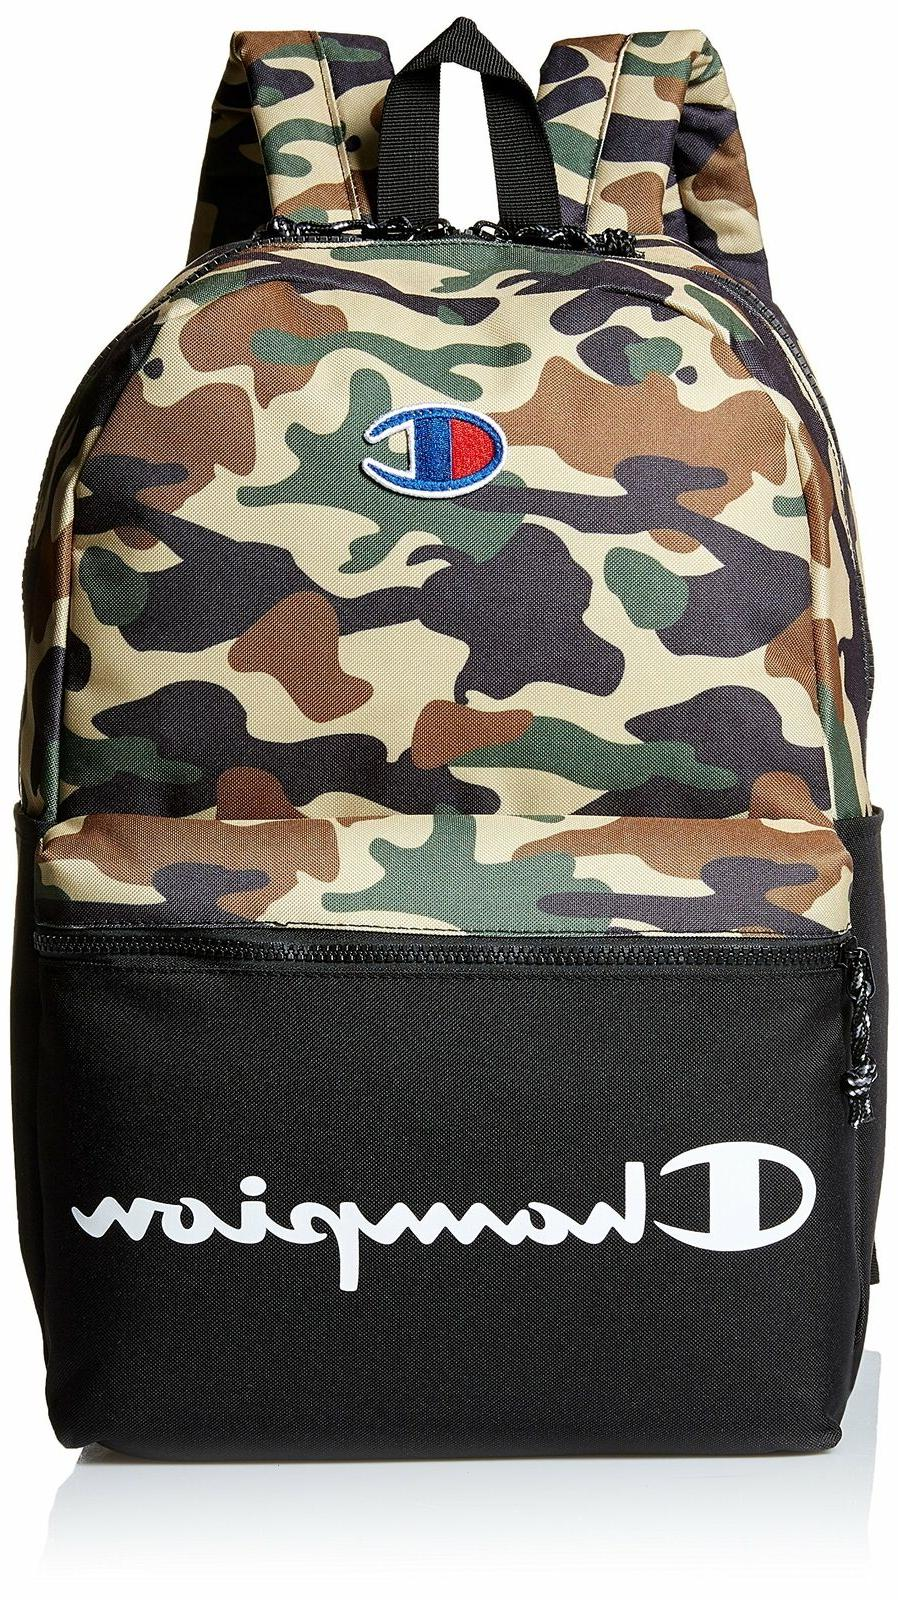 camo and black green backpack logo laptop